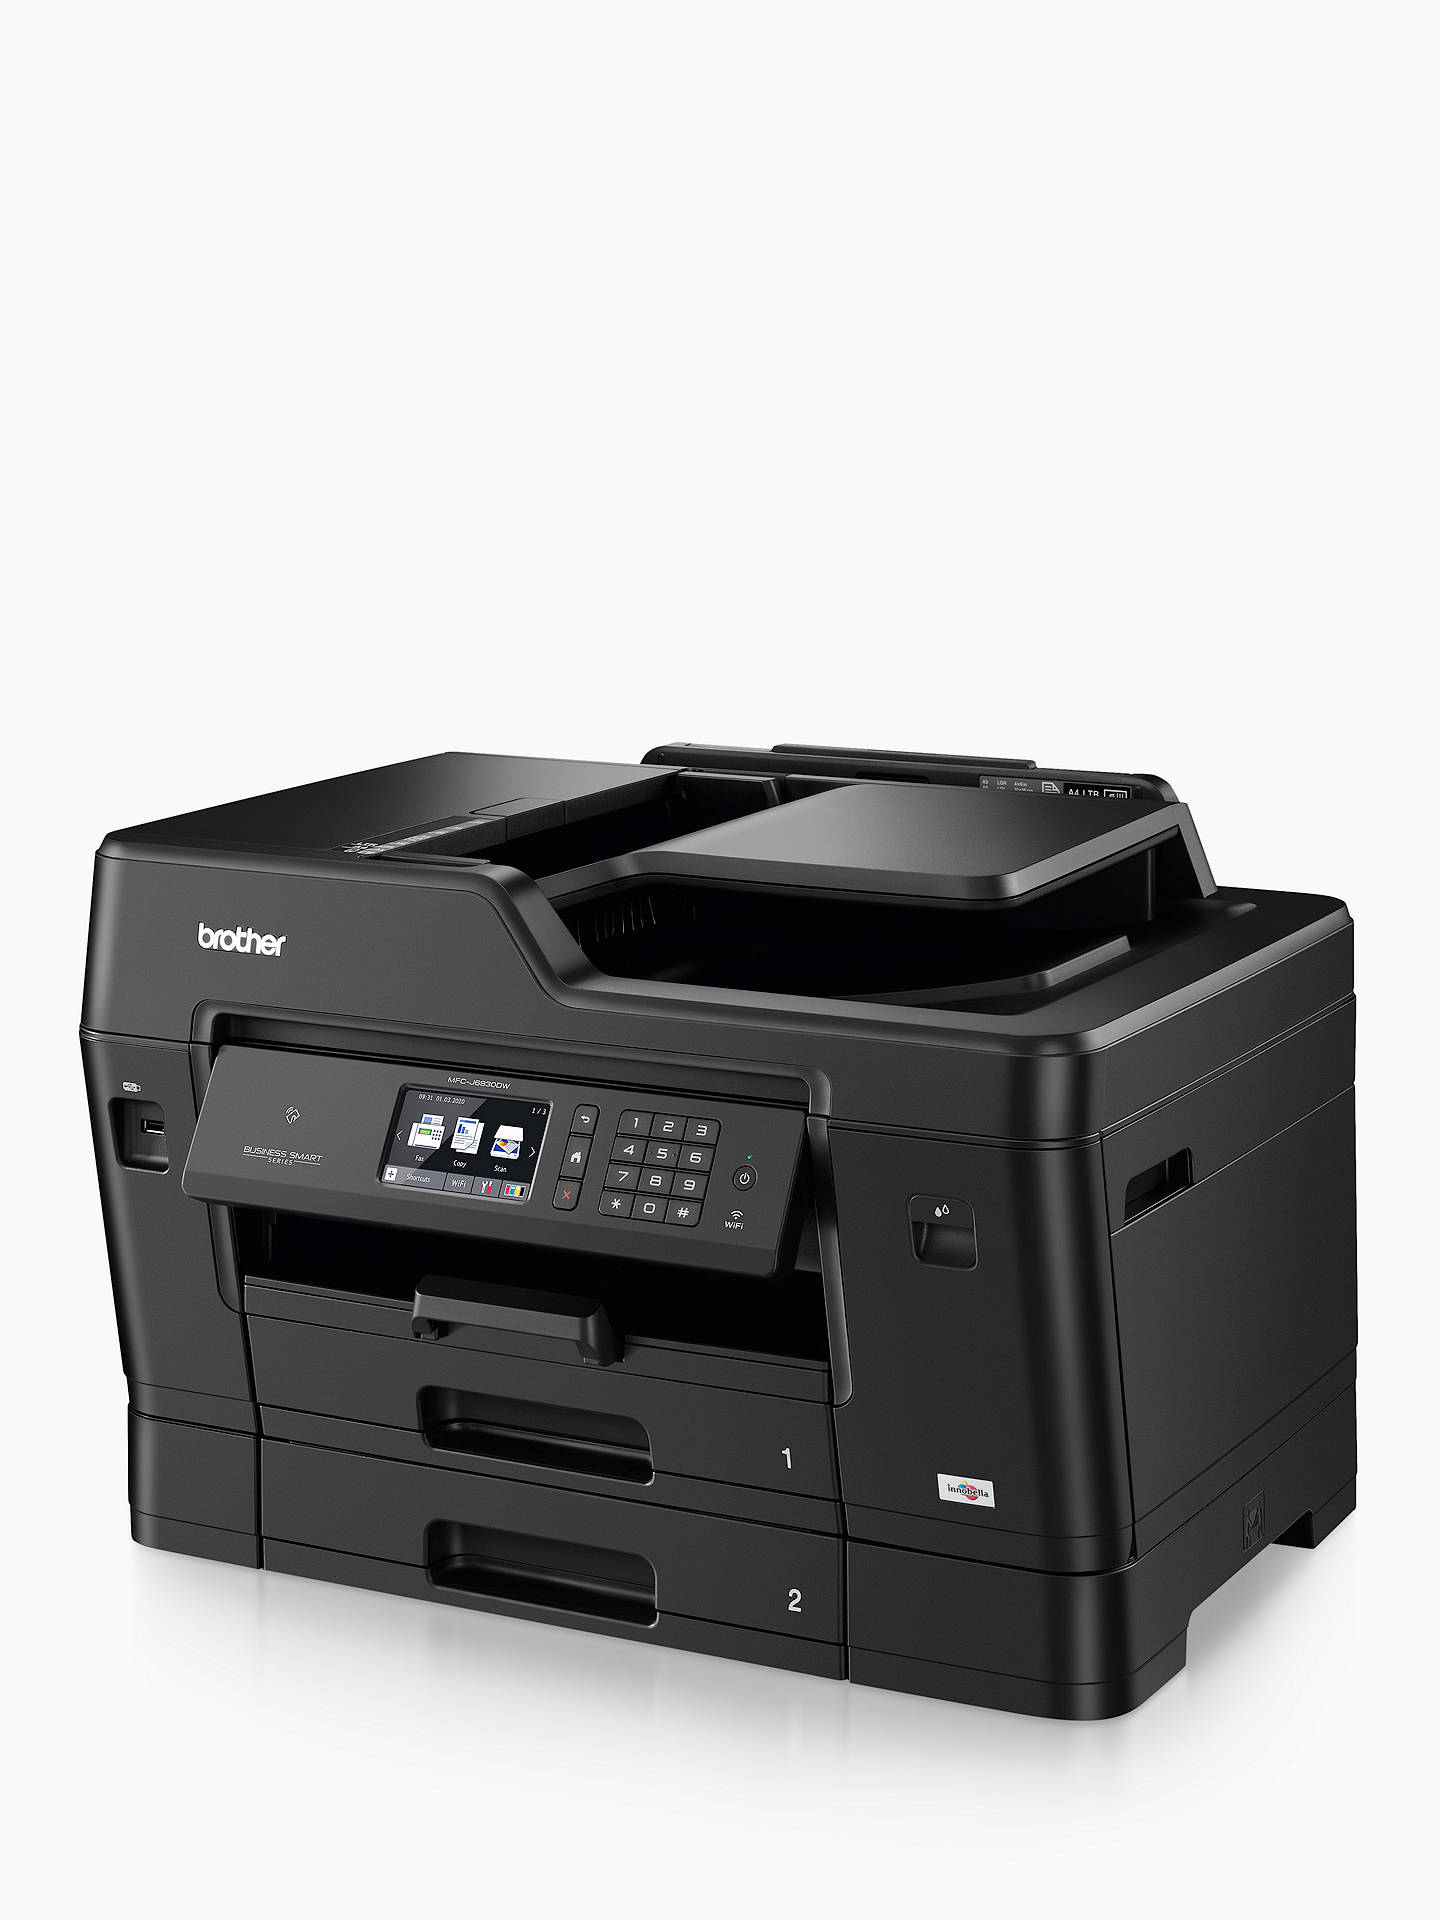 Brother MFC-J6930DW Wireless All-in-One A3 Colour Inkjet Printer & Fax  Machine with NFC